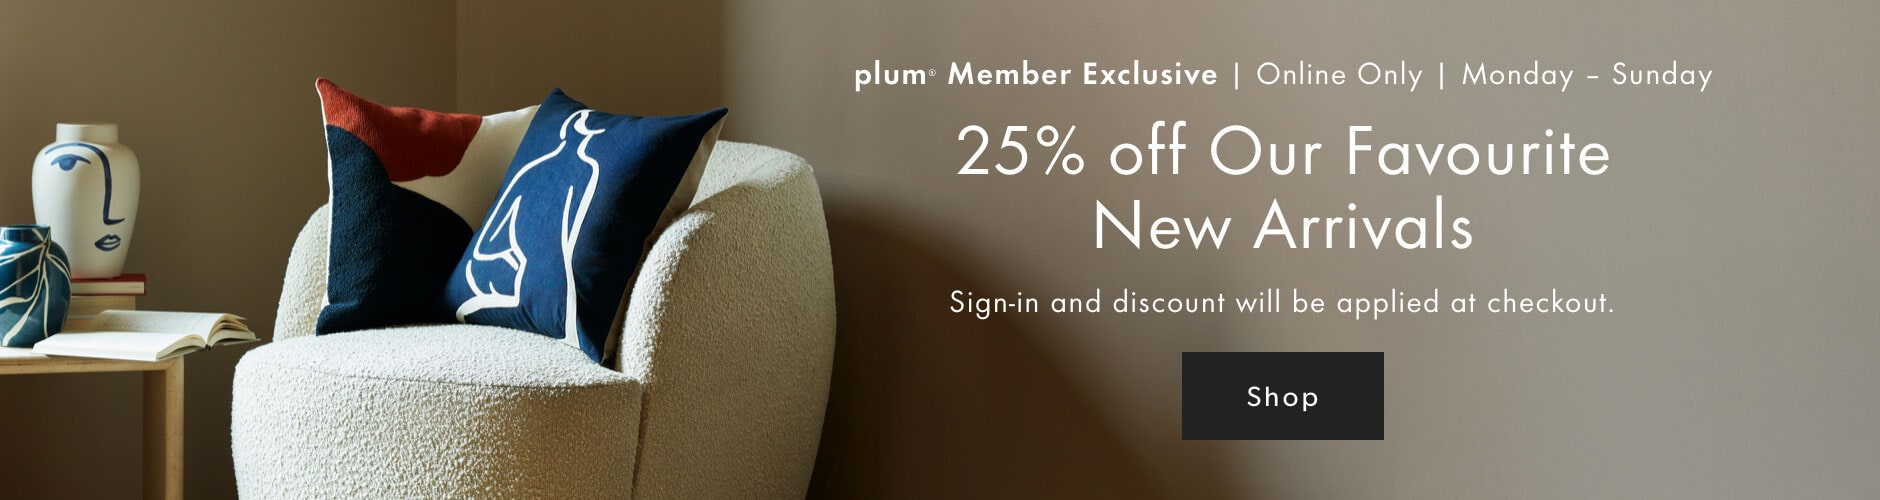 plum Member Exclusive! 25% off our Favourite New Arrivals. August 3 - 9, 2020